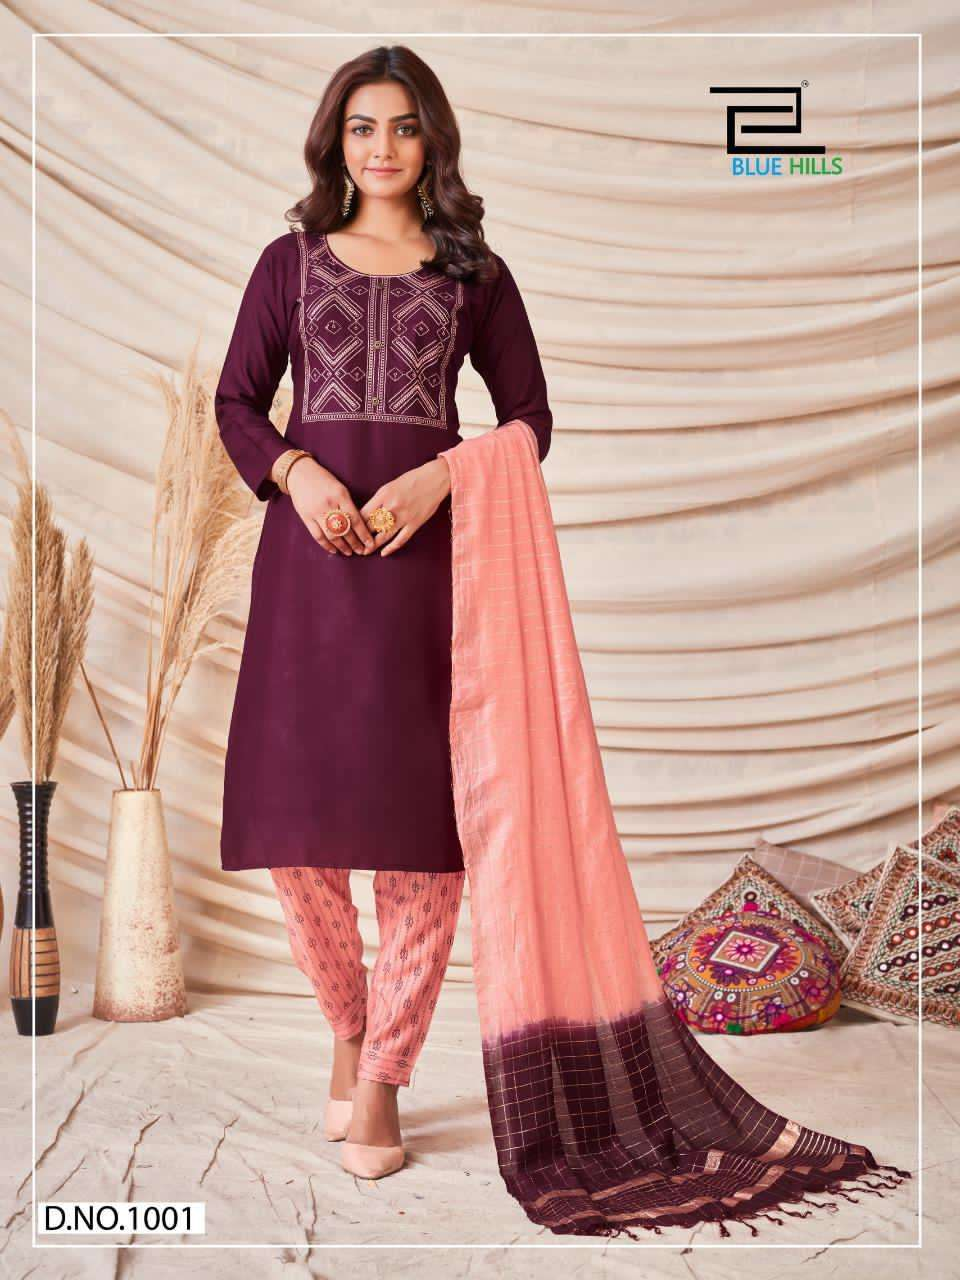 Blue Hills SkyLine 1 Casual Wear Readymade Collection